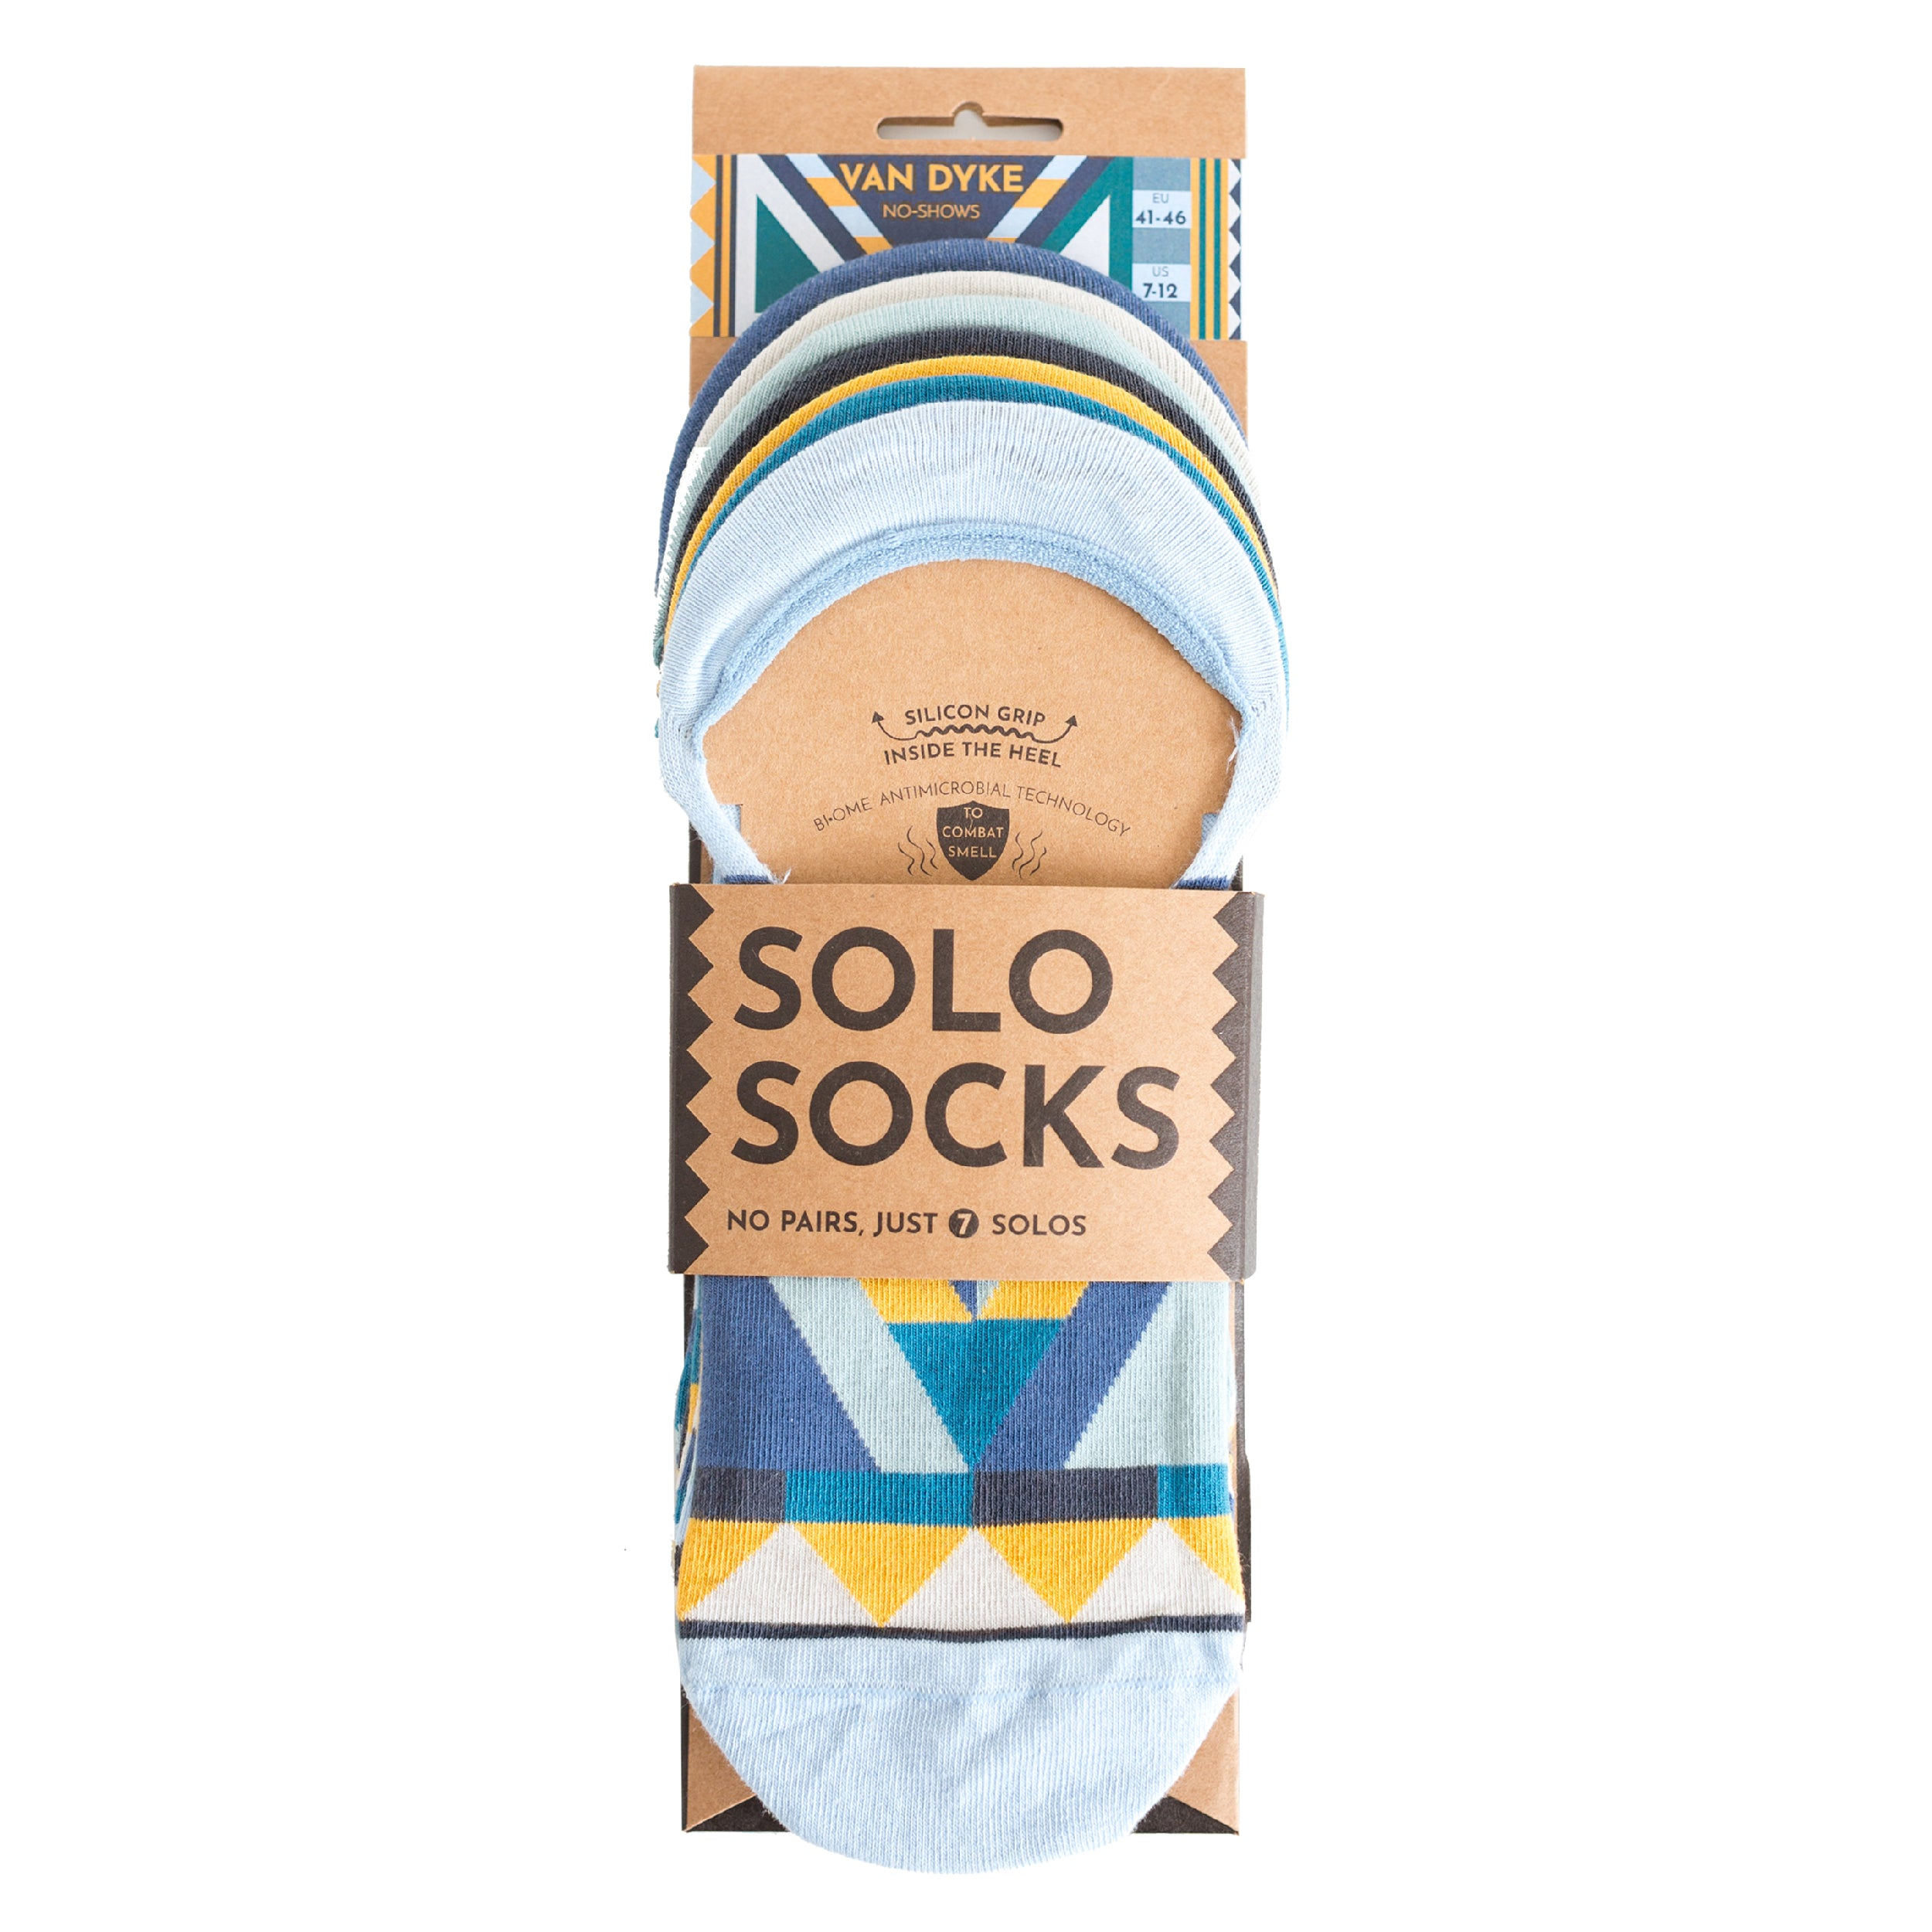 Van Dyke No-Shows - A pack of 7x1 organic cotton no-show ankle sneaker socks designed to mix & match. Made by SOLOSOCKS™ of Denmark. Sustainable colorful happy Danish design socks for men and women| High quality but cheap and durable fashion socks | Worldwide delivery | Free shipping above €40 | Reduce textile waste by 41%